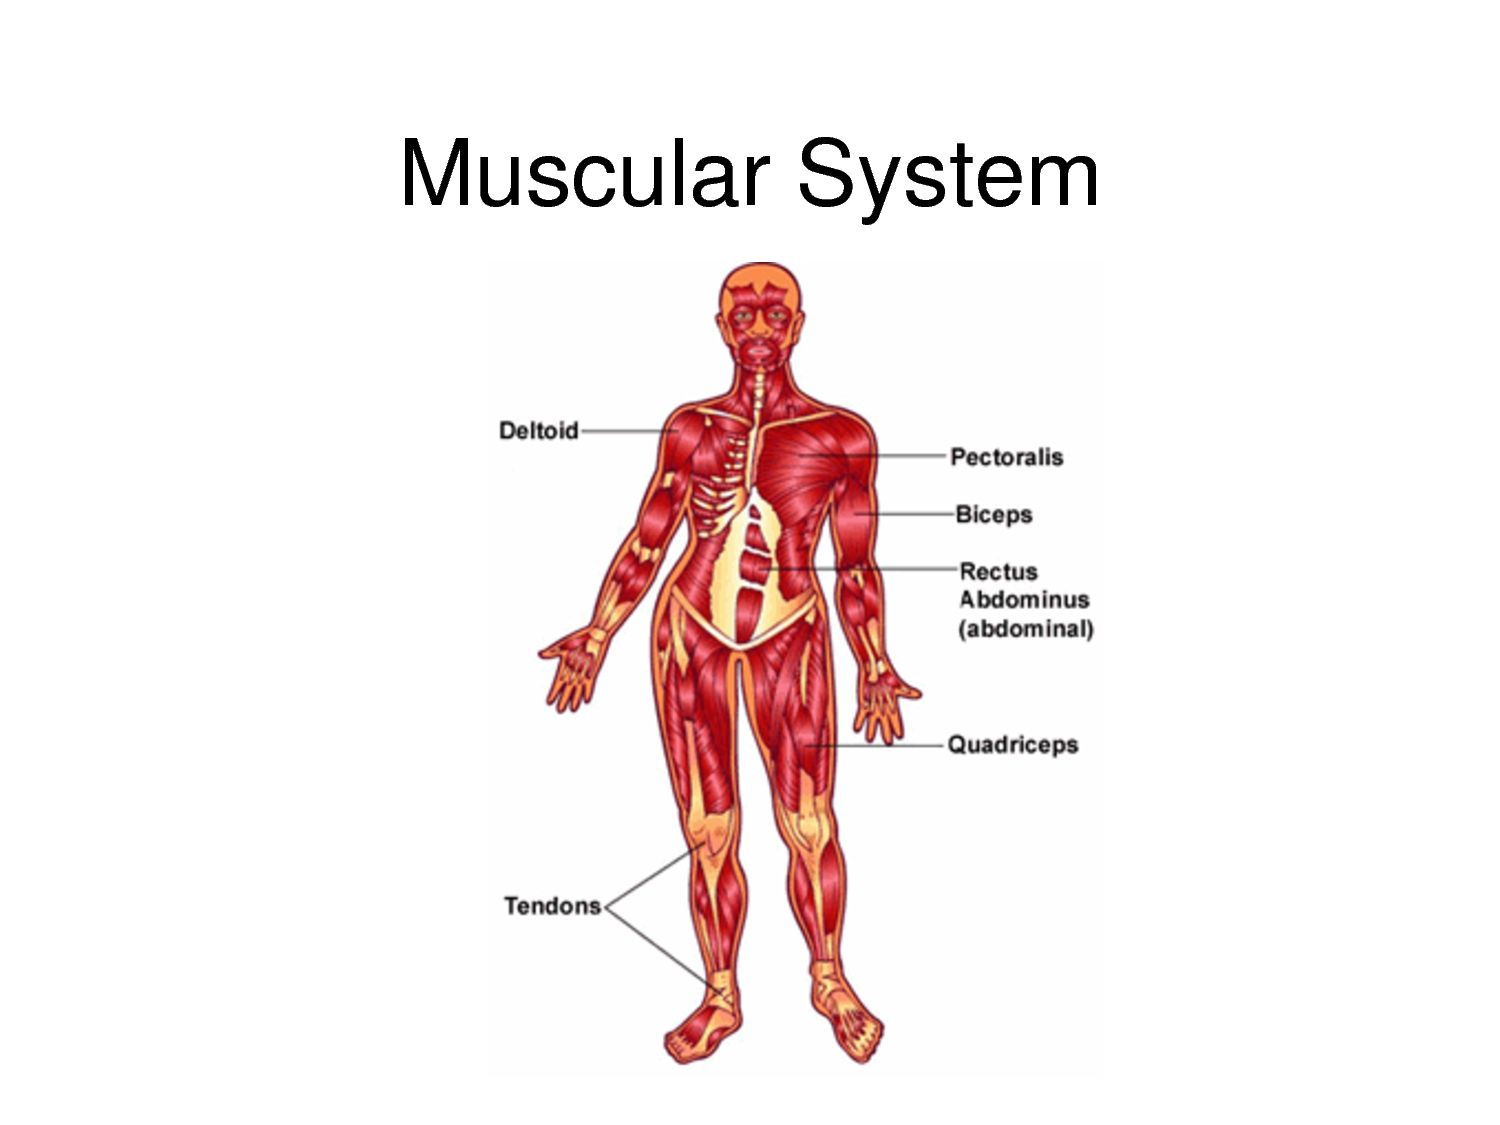 Diagram Of The Muscular System Koibana Info In 2020 Human Muscular System Muscular System Muscular System Labeled